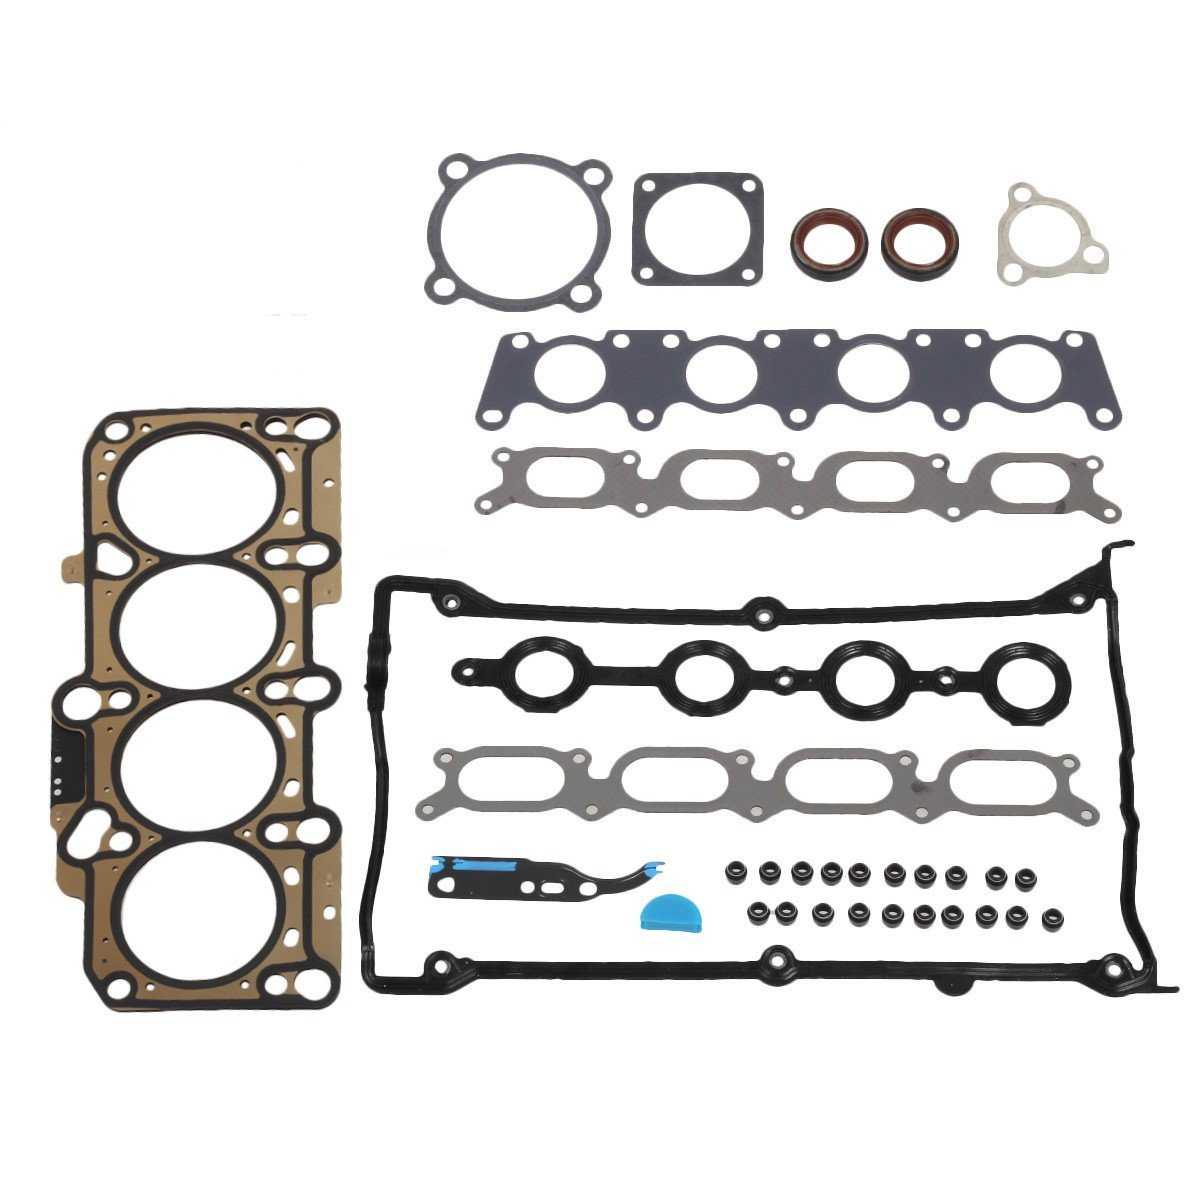 Vincos Cylinder Head Gasket Set Compatible with AUDI and Replacement For VOLKSWAGEN 1.8L Turbo 99-06